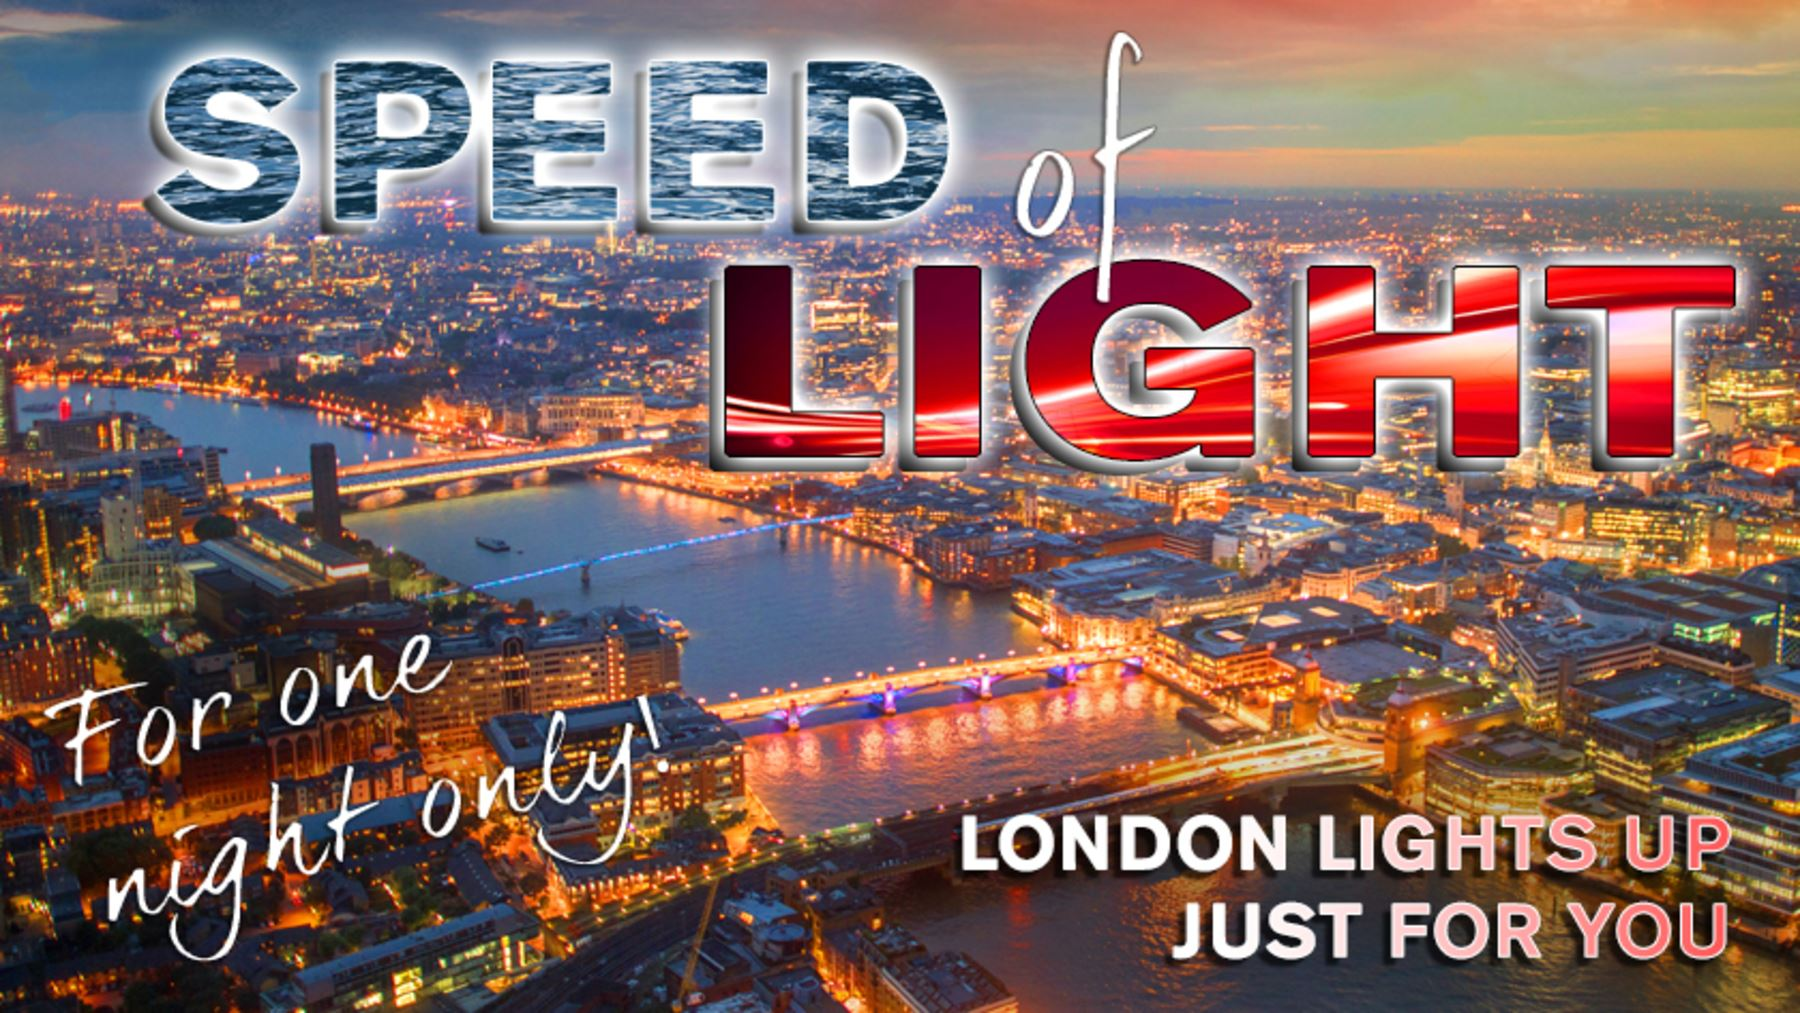 Introducing Thames Rockets SPEED OF LIGHT!